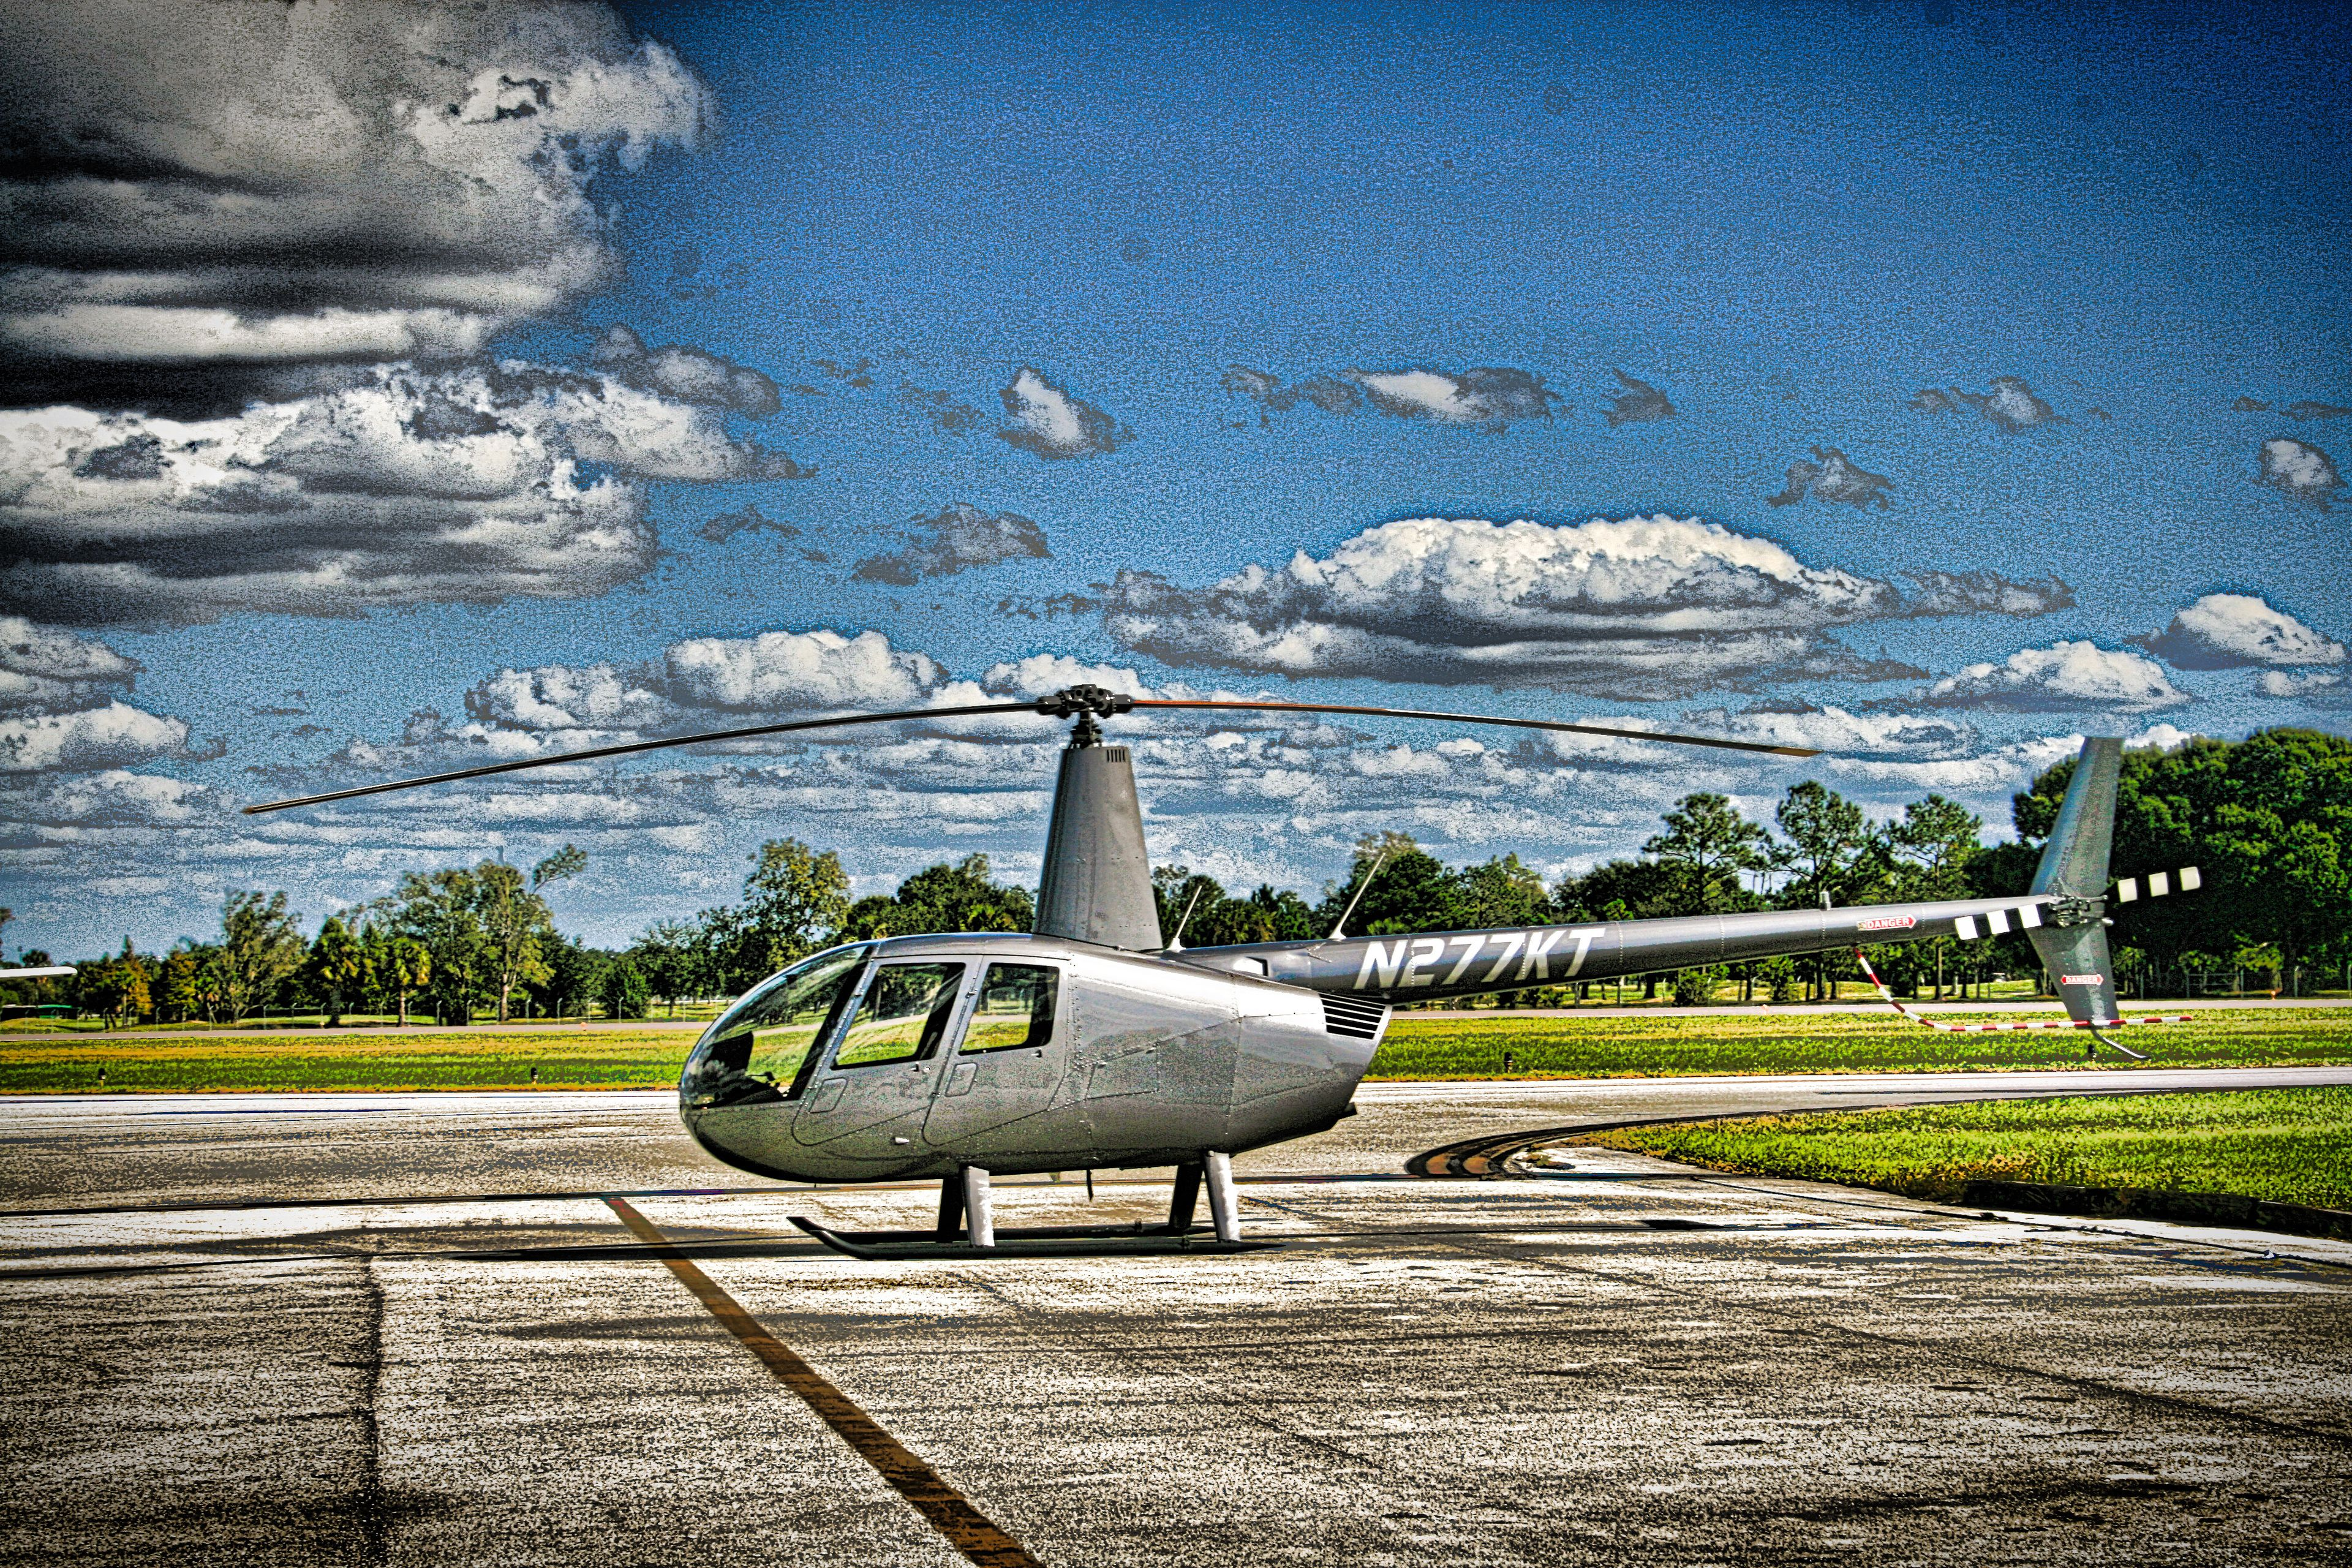 Helicopter on landing pad in Kissimmee, Florida